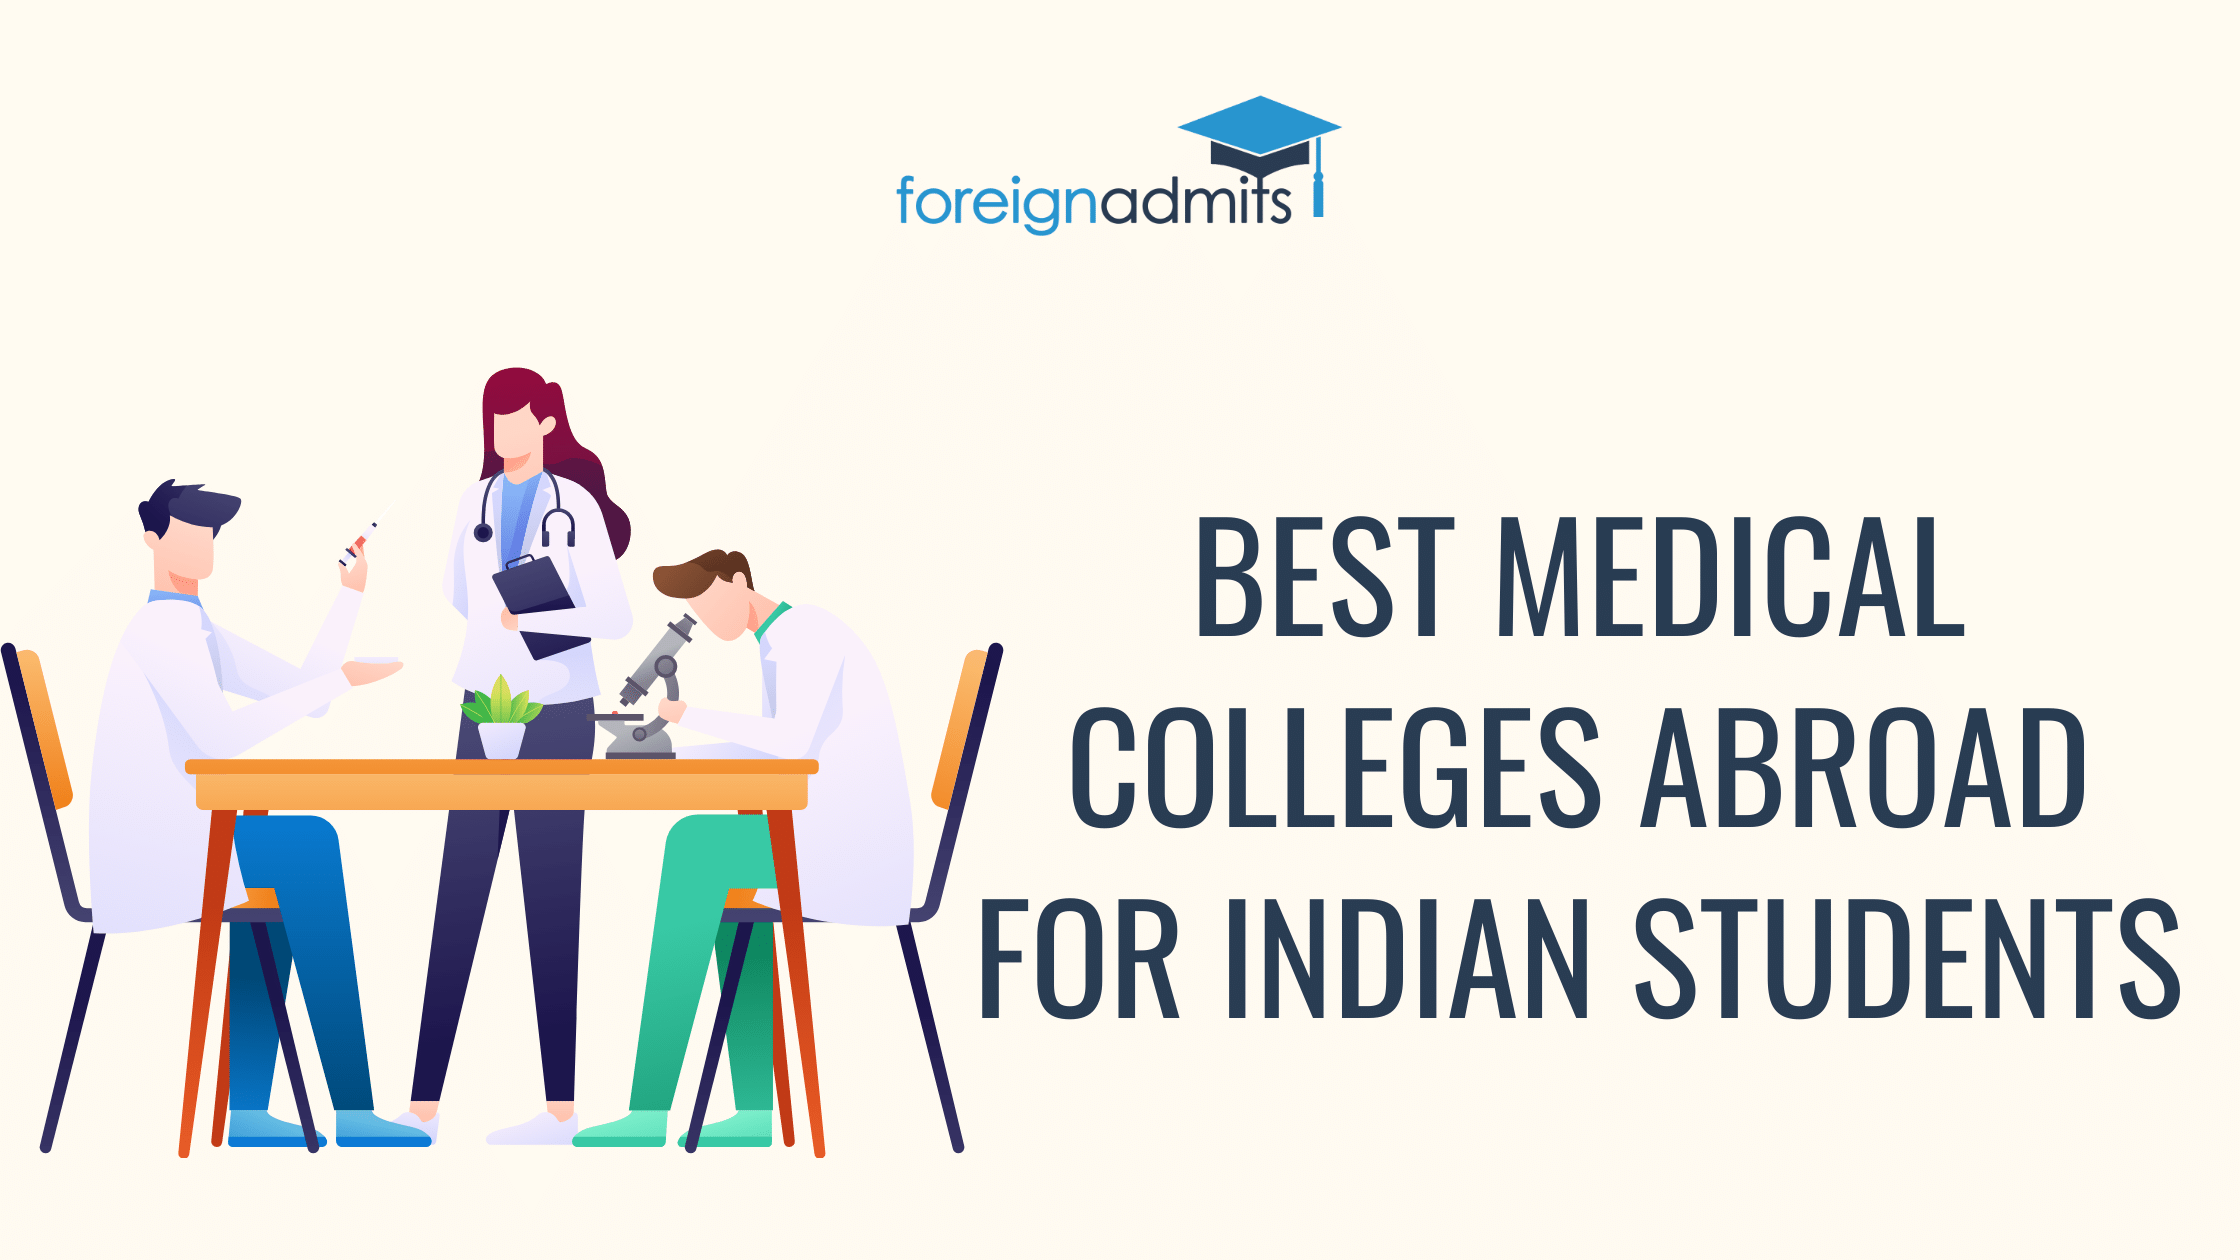 Best Medical Colleges Abroad for Indian Students